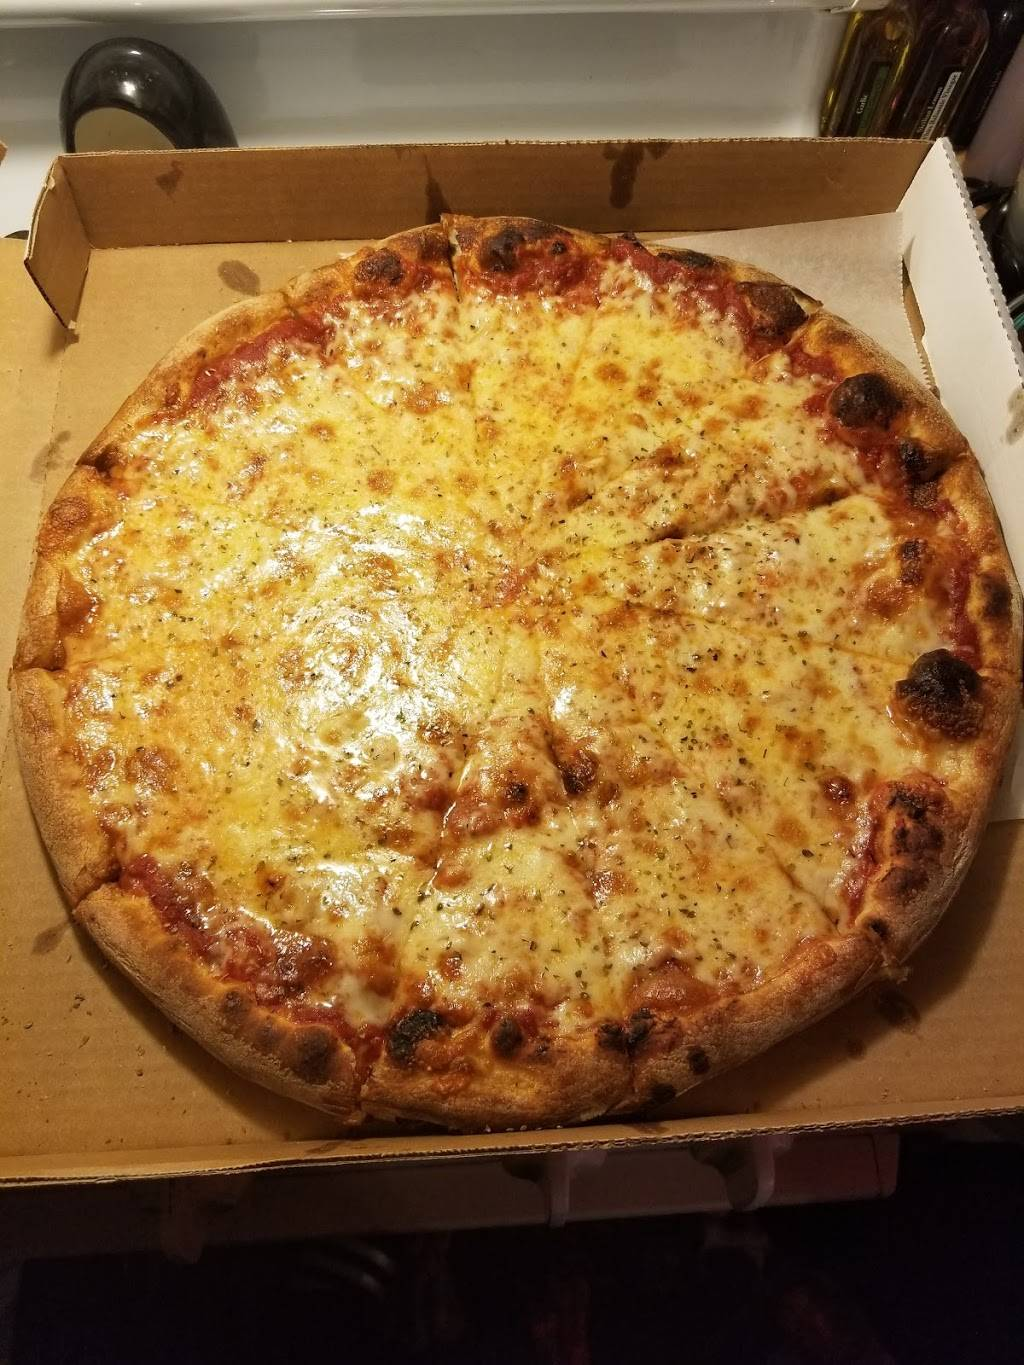 Crust Almighty Pizzeria | restaurant | 46 S 27th St, Pittsburgh, PA 15203, USA | 4124816262 OR +1 412-481-6262